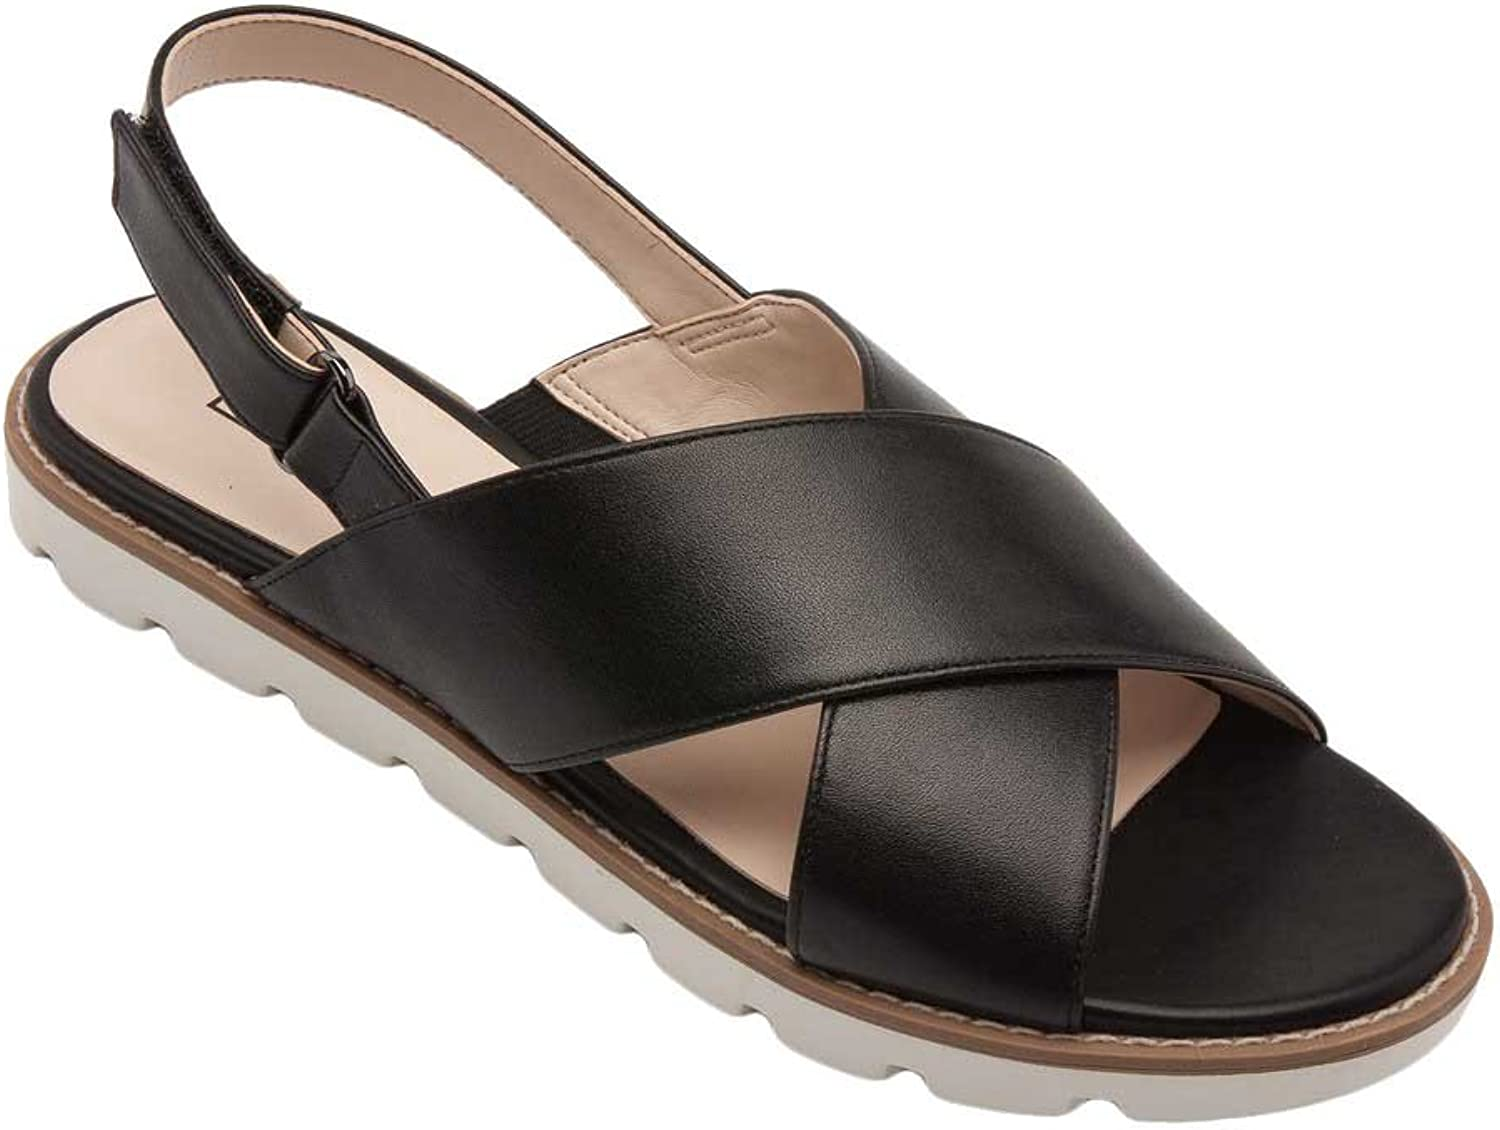 Pic Pay Cayden Women's Sandals - Leather Slingback Flat Sandal Black Leather 6M